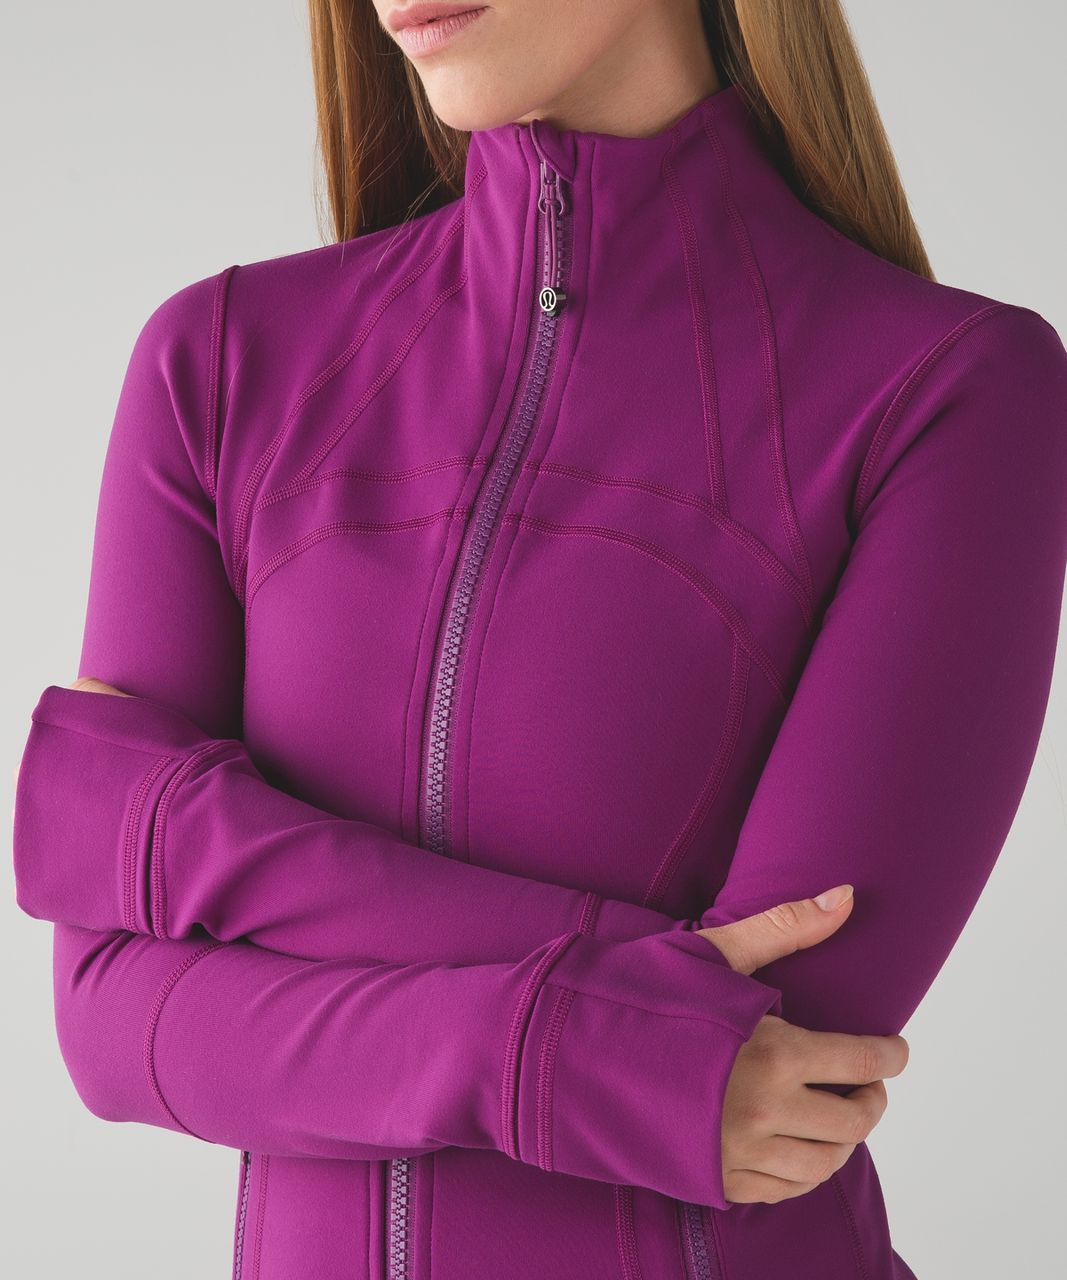 Lululemon Define Jacket - Regal Plum